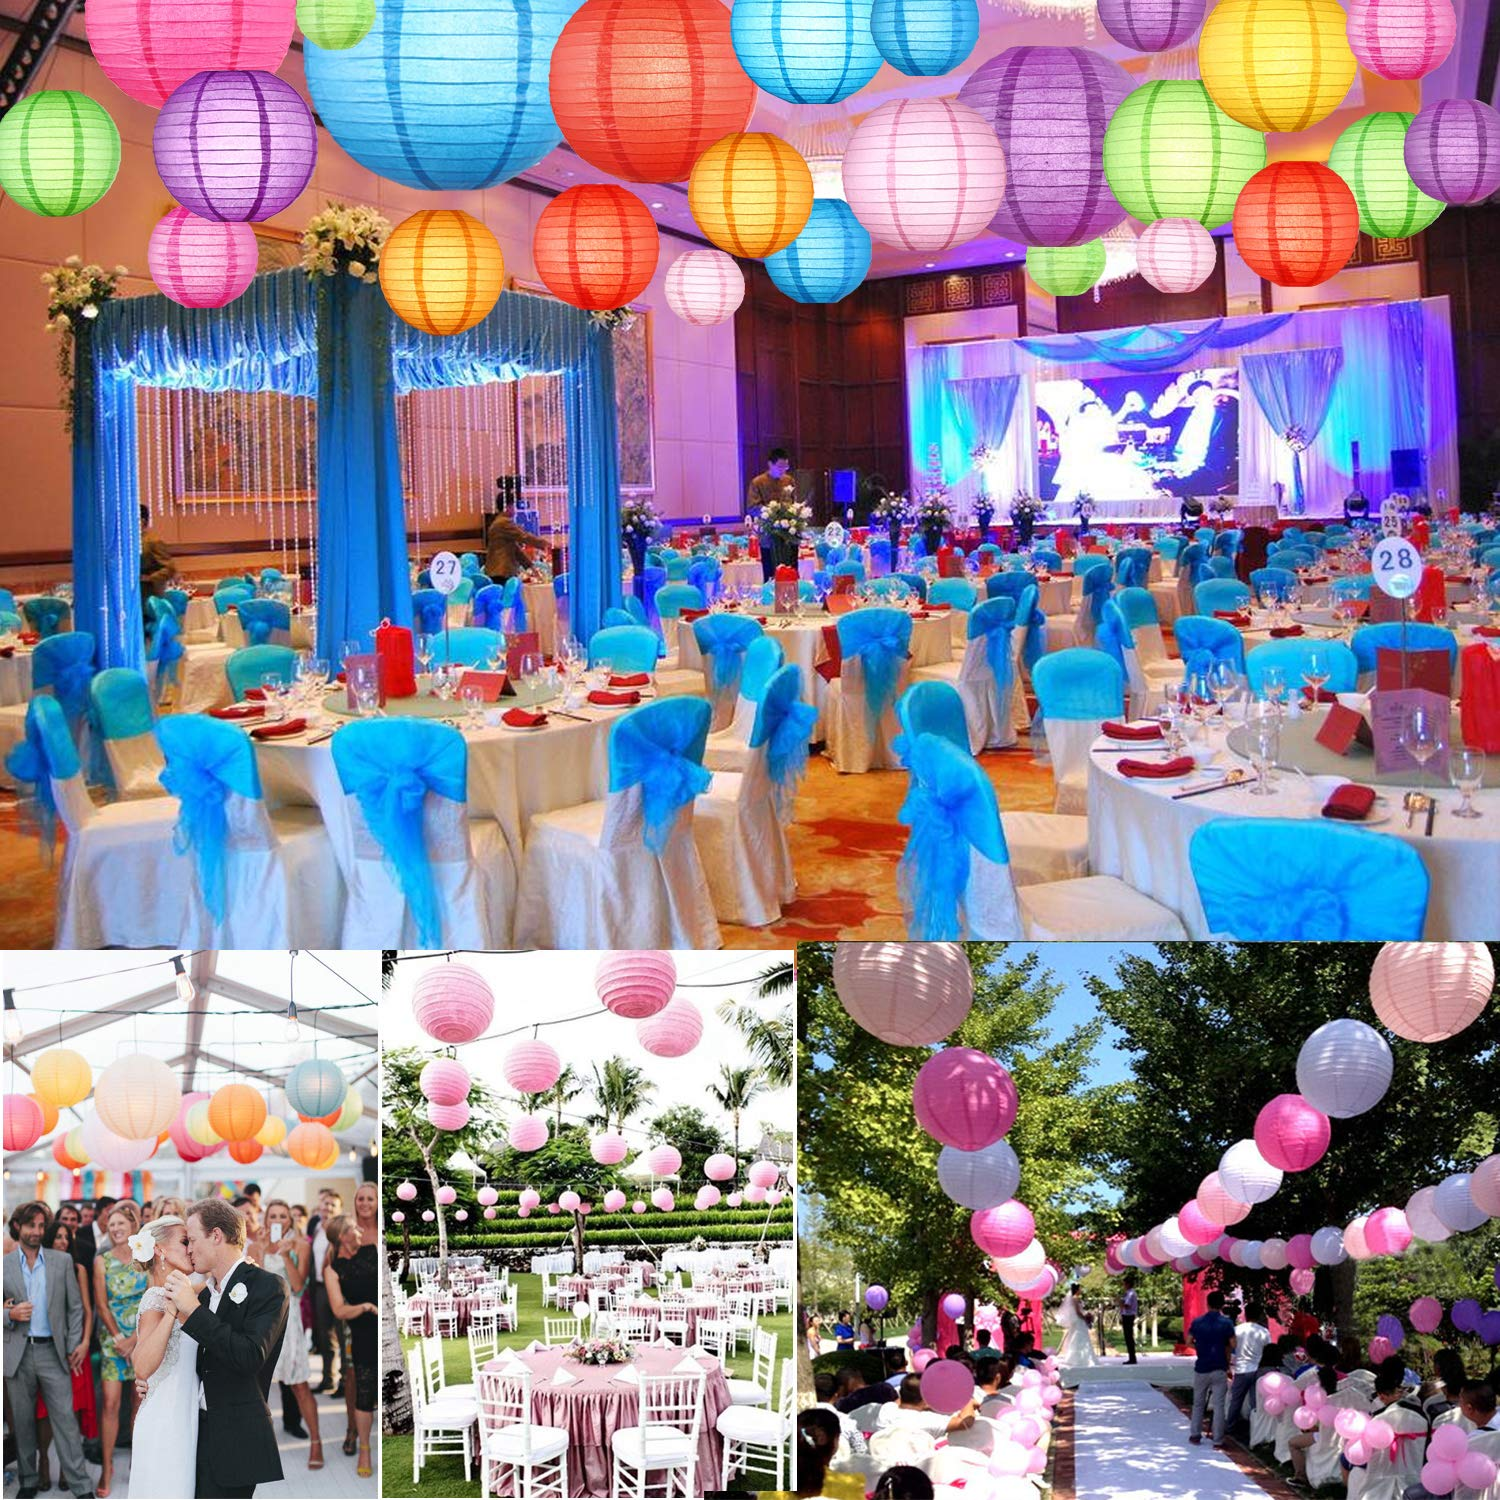 Paper Lanterns Decorative 25 PCS, Chinese Japanese Lanterns Colorful Hanging Paper lanters Balls for Birthday Wedding Baby Showers Home Fiesta Party Decorations, Very Pretty (Sizes of 4 6 8 10 12inch)